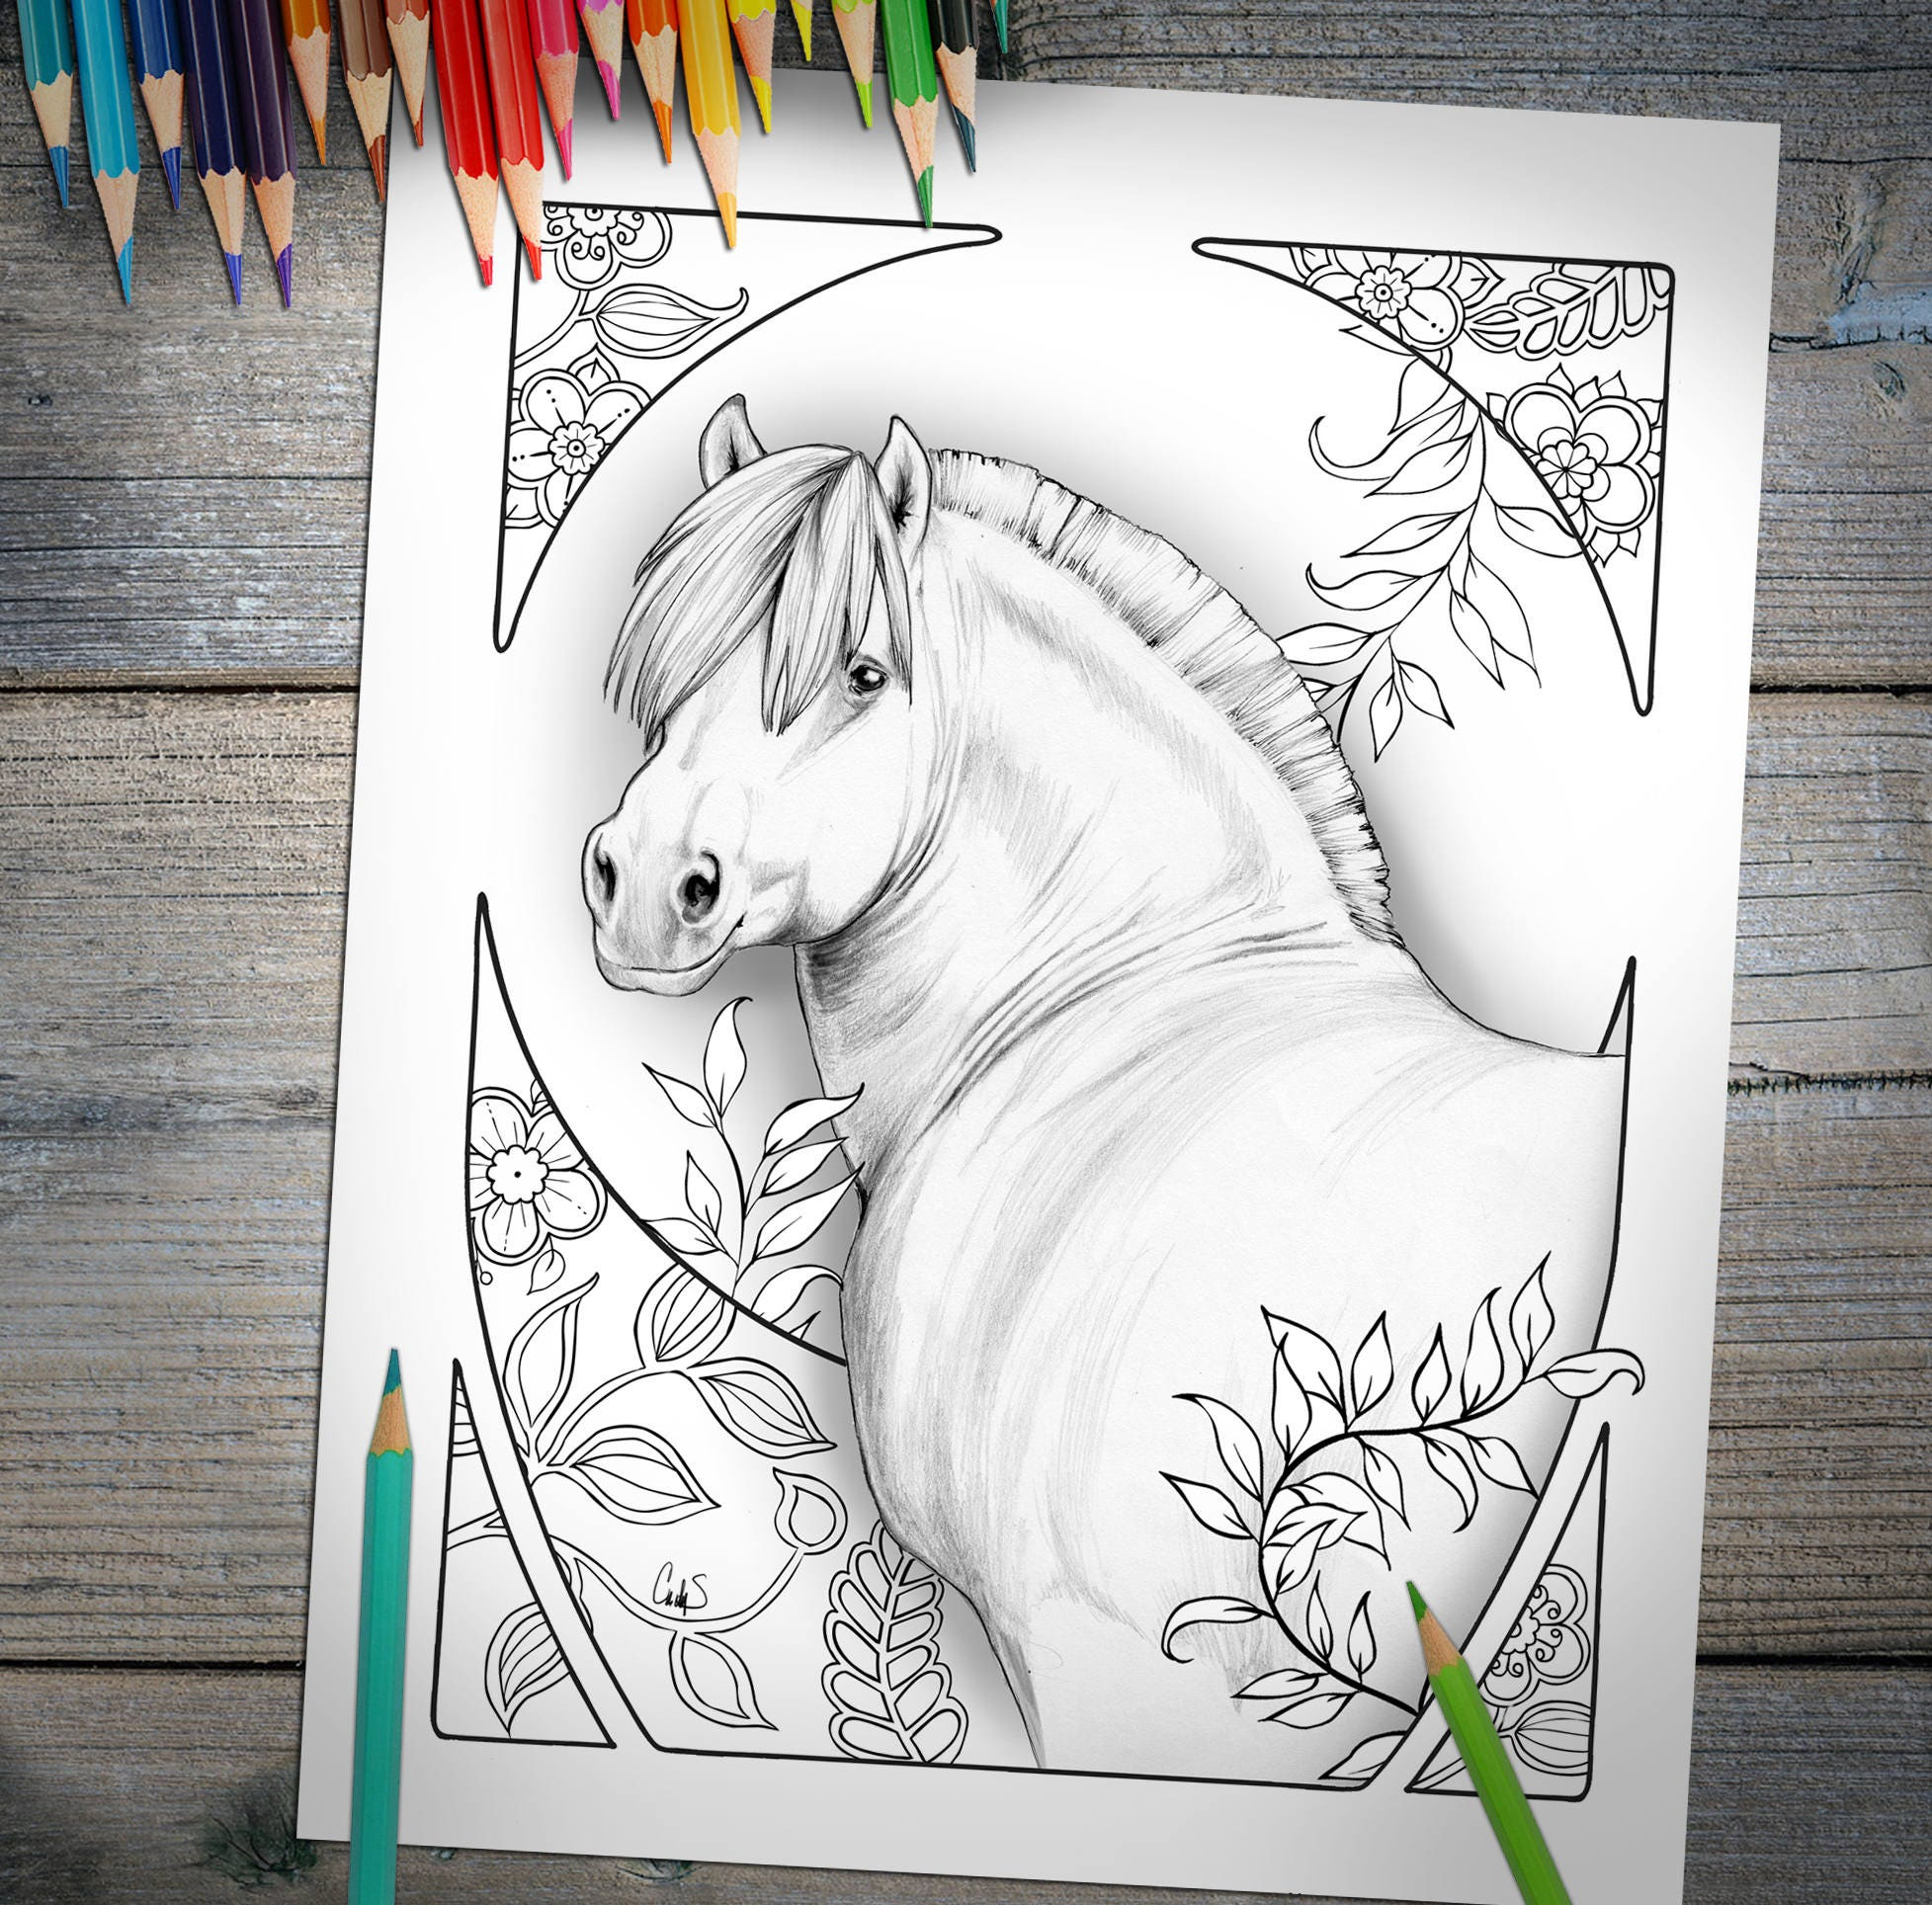 Adult Coloring Book Digital Download PDF, Hand Drawn Horse Color For Adults  To Print Out, Great Gift ON SALE Limited Time